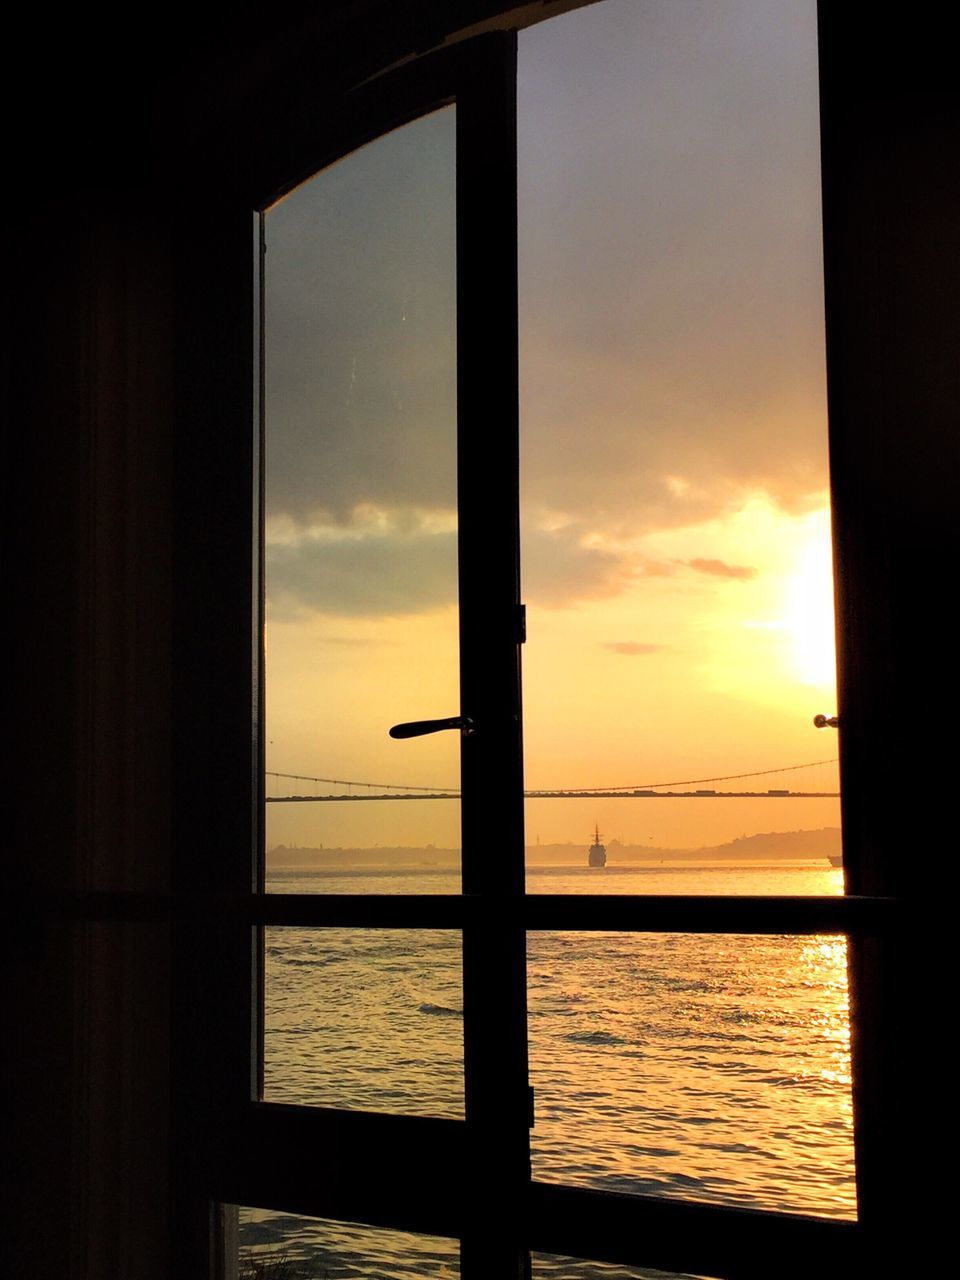 sunset, sea, orange color, water, silhouette, nature, scenics, tranquil scene, sky, beauty in nature, tranquility, window, horizon over water, indoors, no people, close-up, day